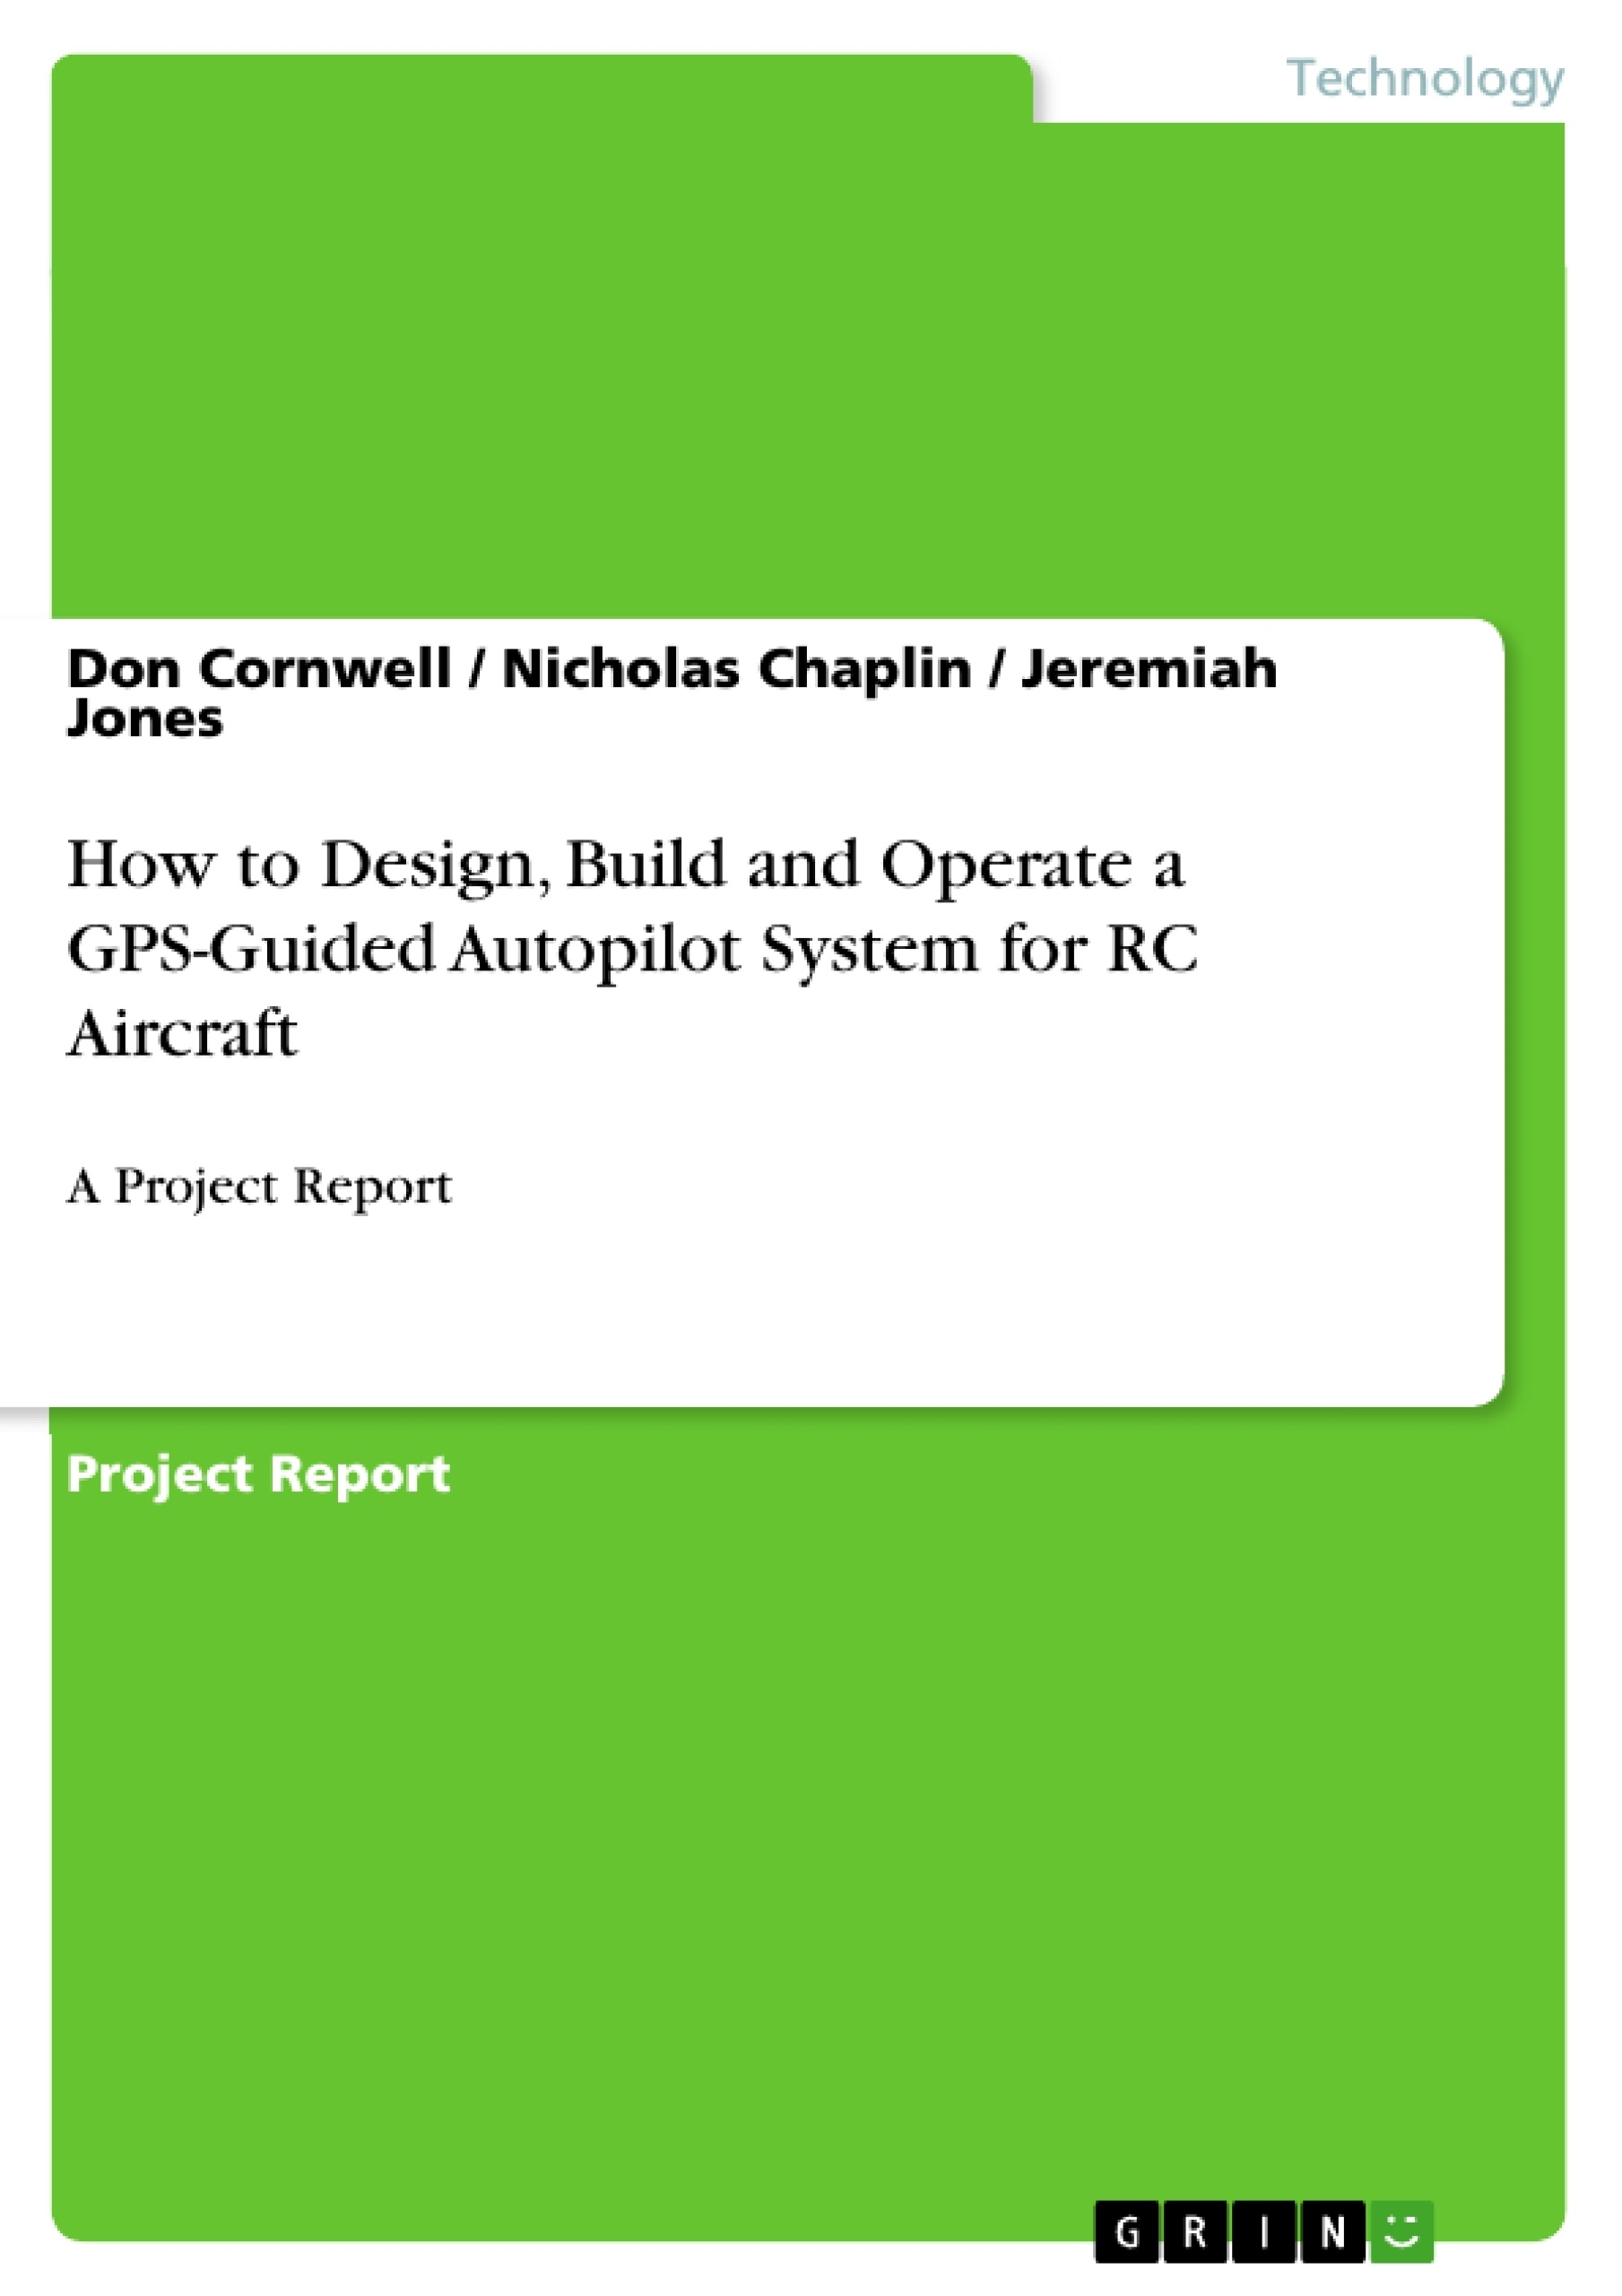 Title: How to Design, Build and Operate a GPS-Guided Autopilot System for RC Aircraft